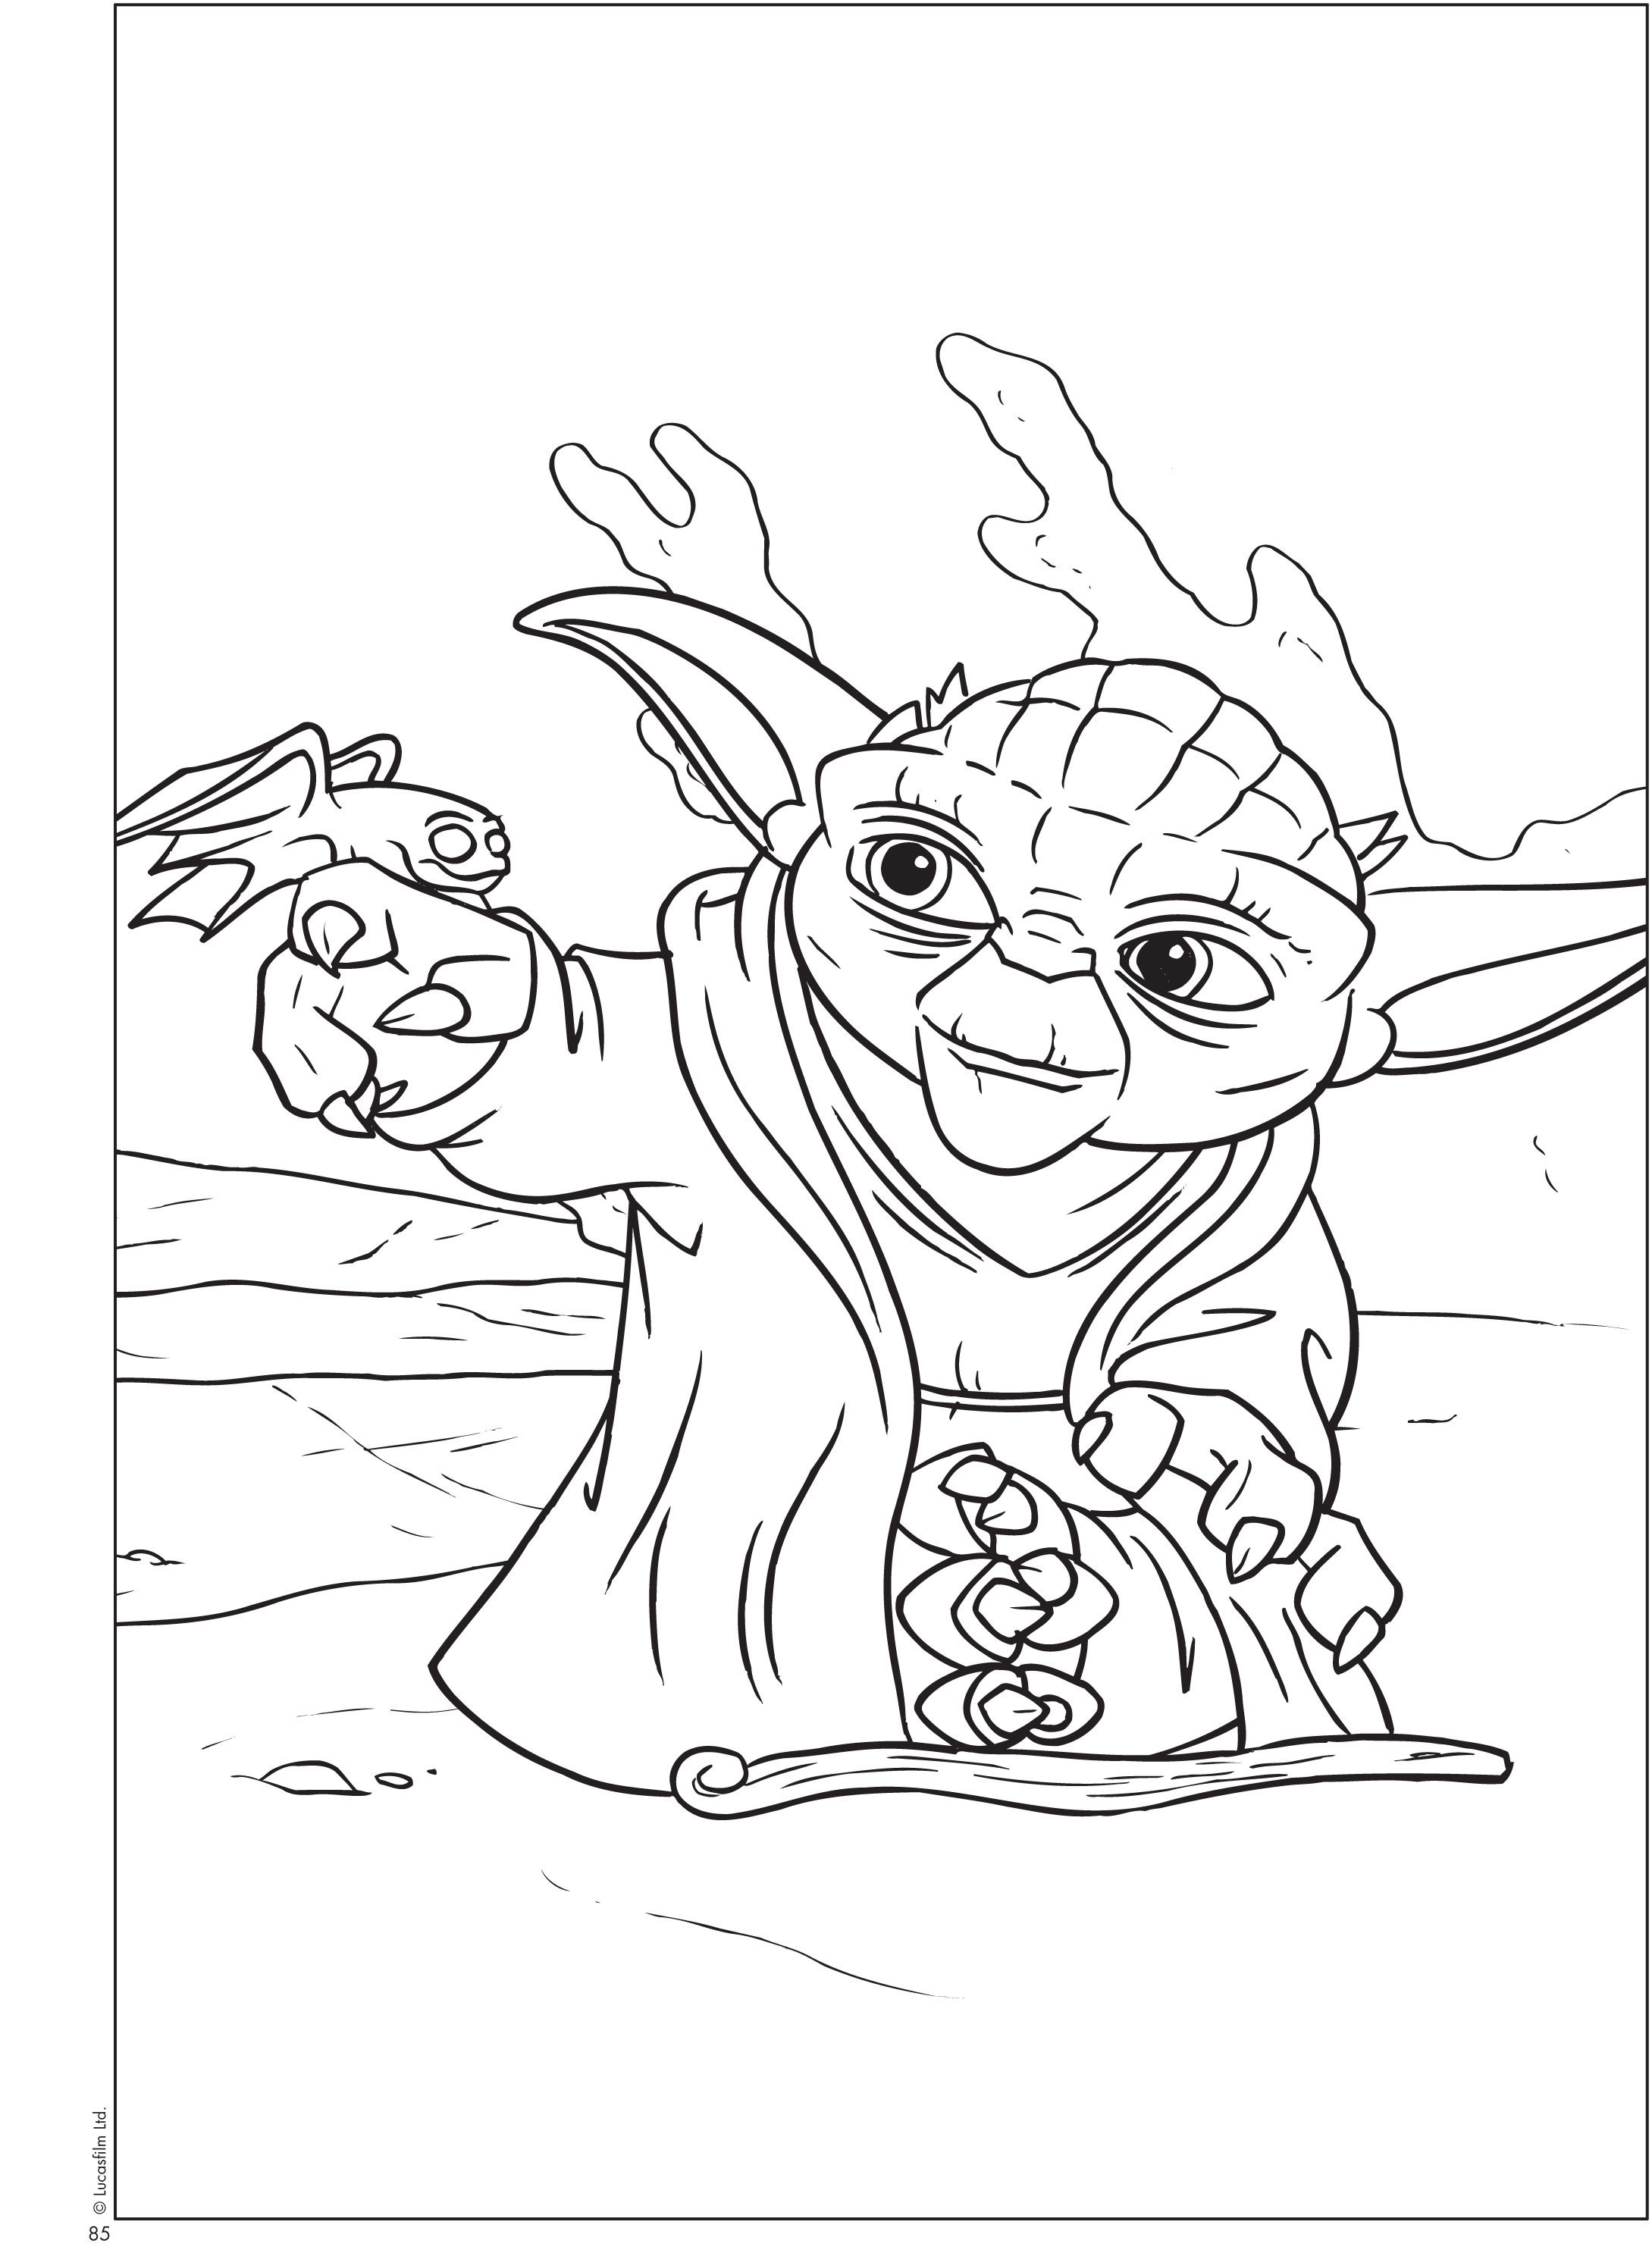 download free printable star wars - Yoda Coloring Pages